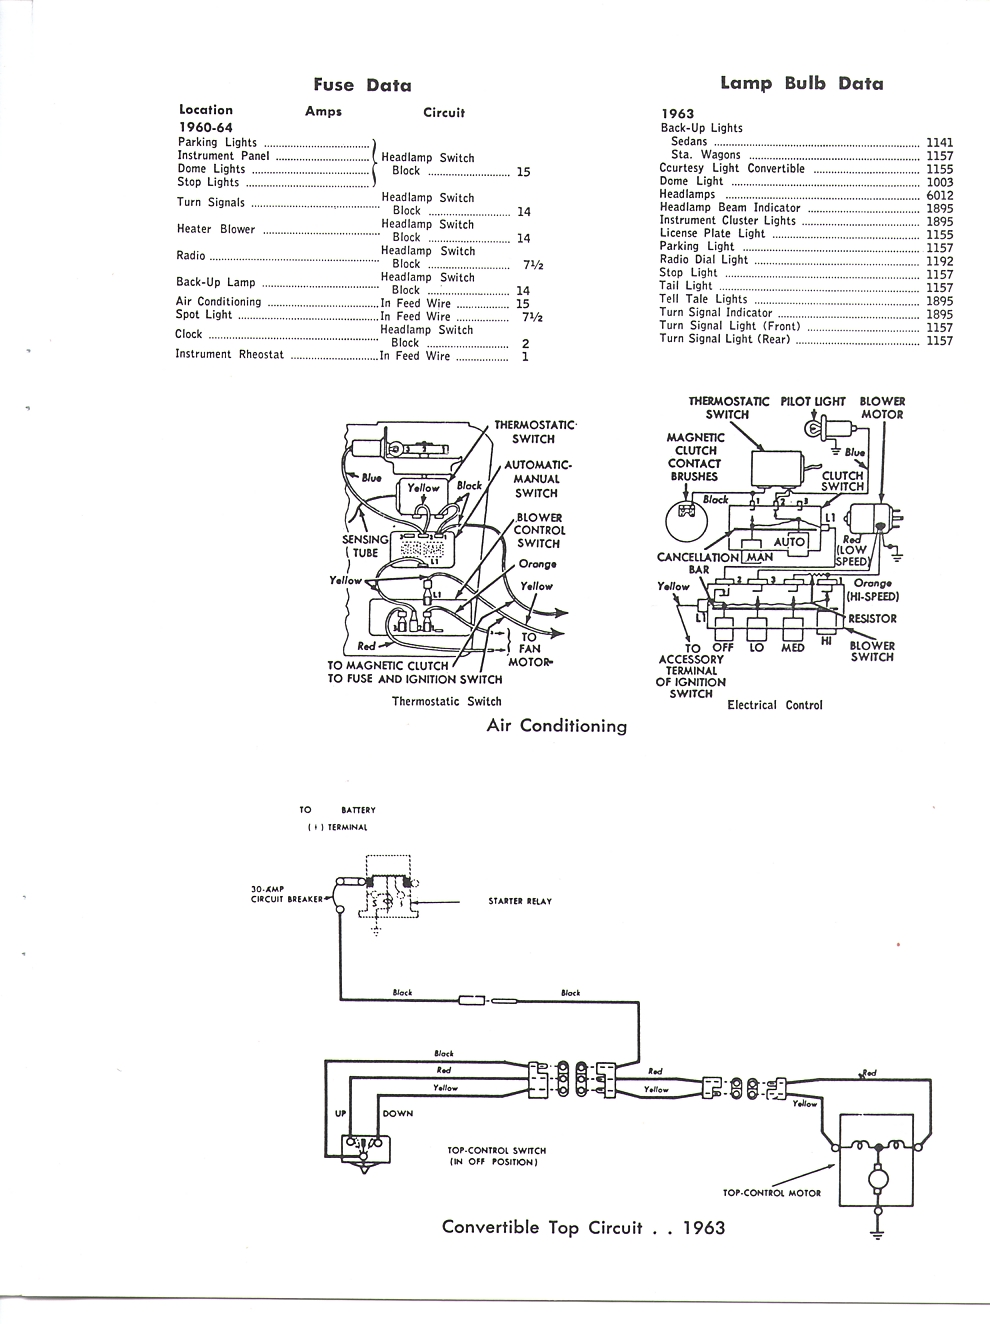 Falcon Diagrams: Wiring Diagram 1965 Ford Falcon Club Wagon At Nayabfun.com